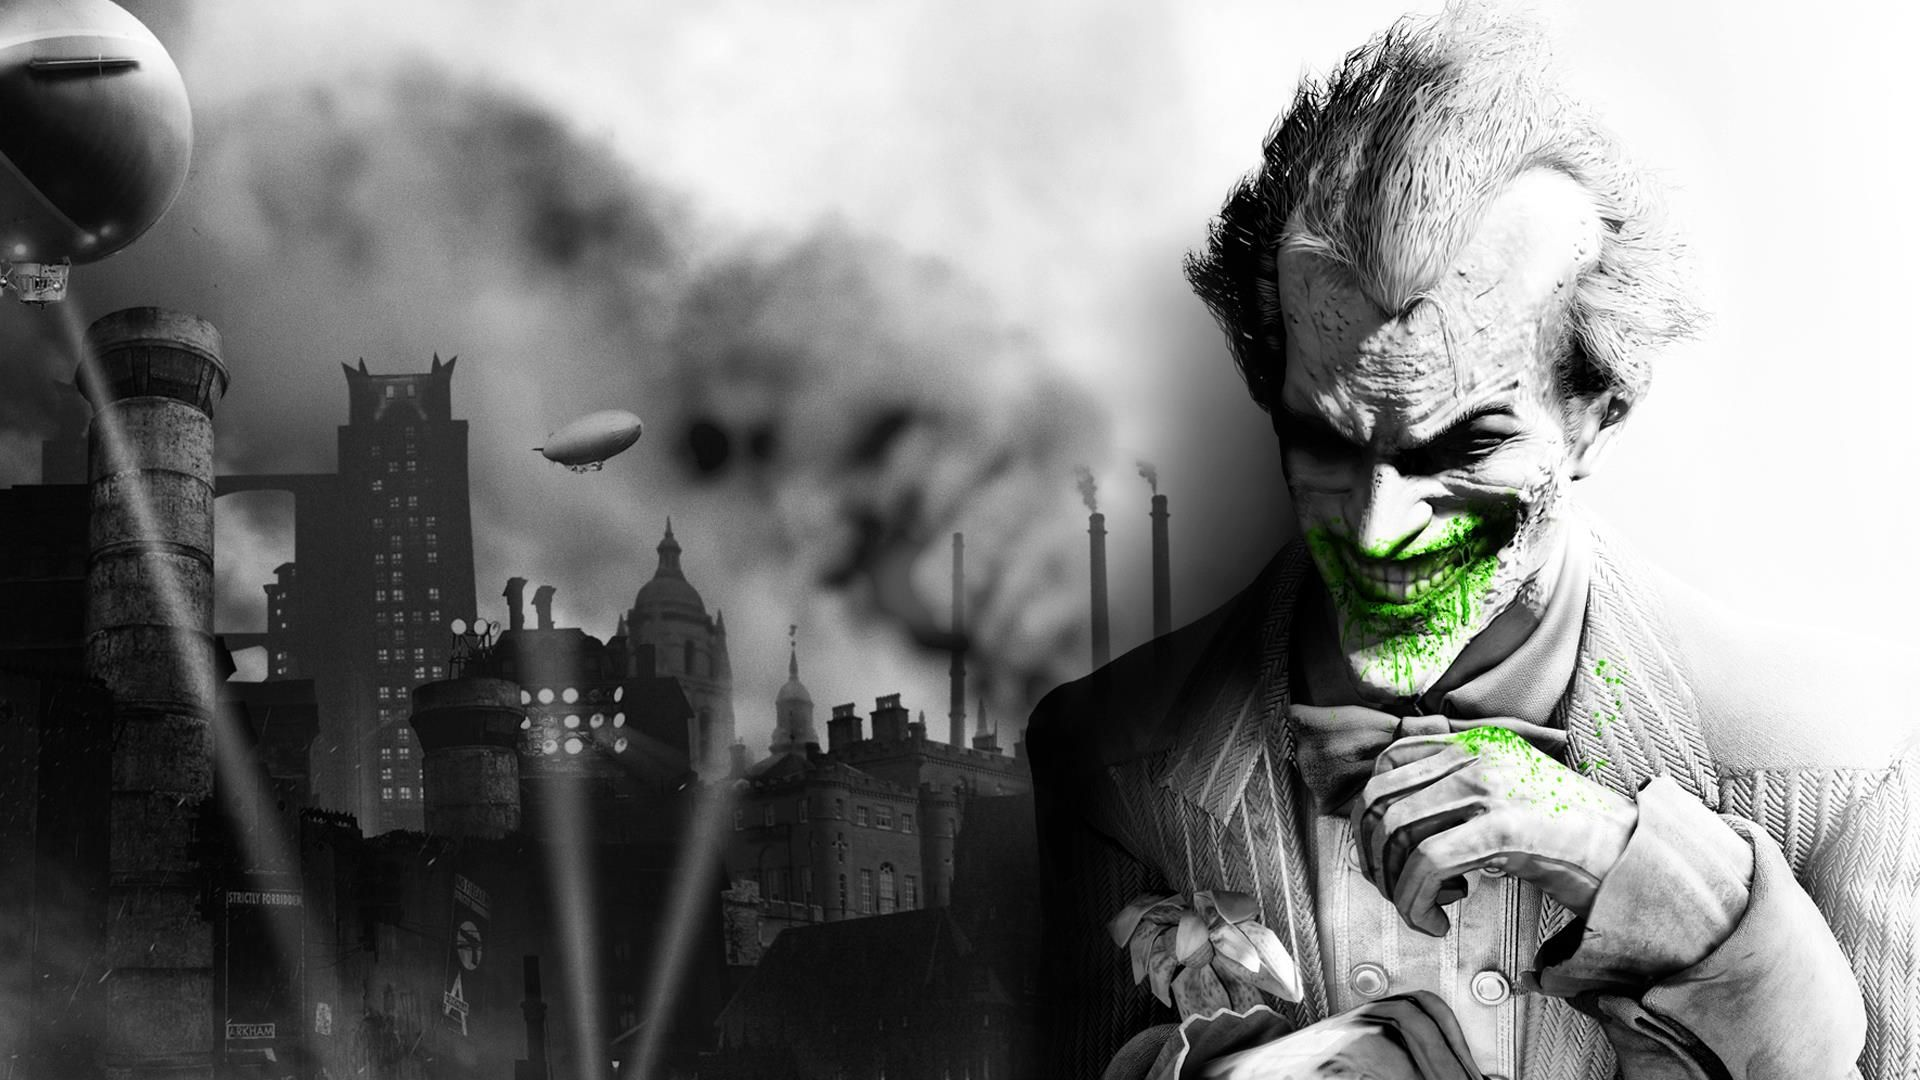 The Joker Arkham City Hd Desktop Wallpaper High Definition Batman Arkham City Arkham City Batman